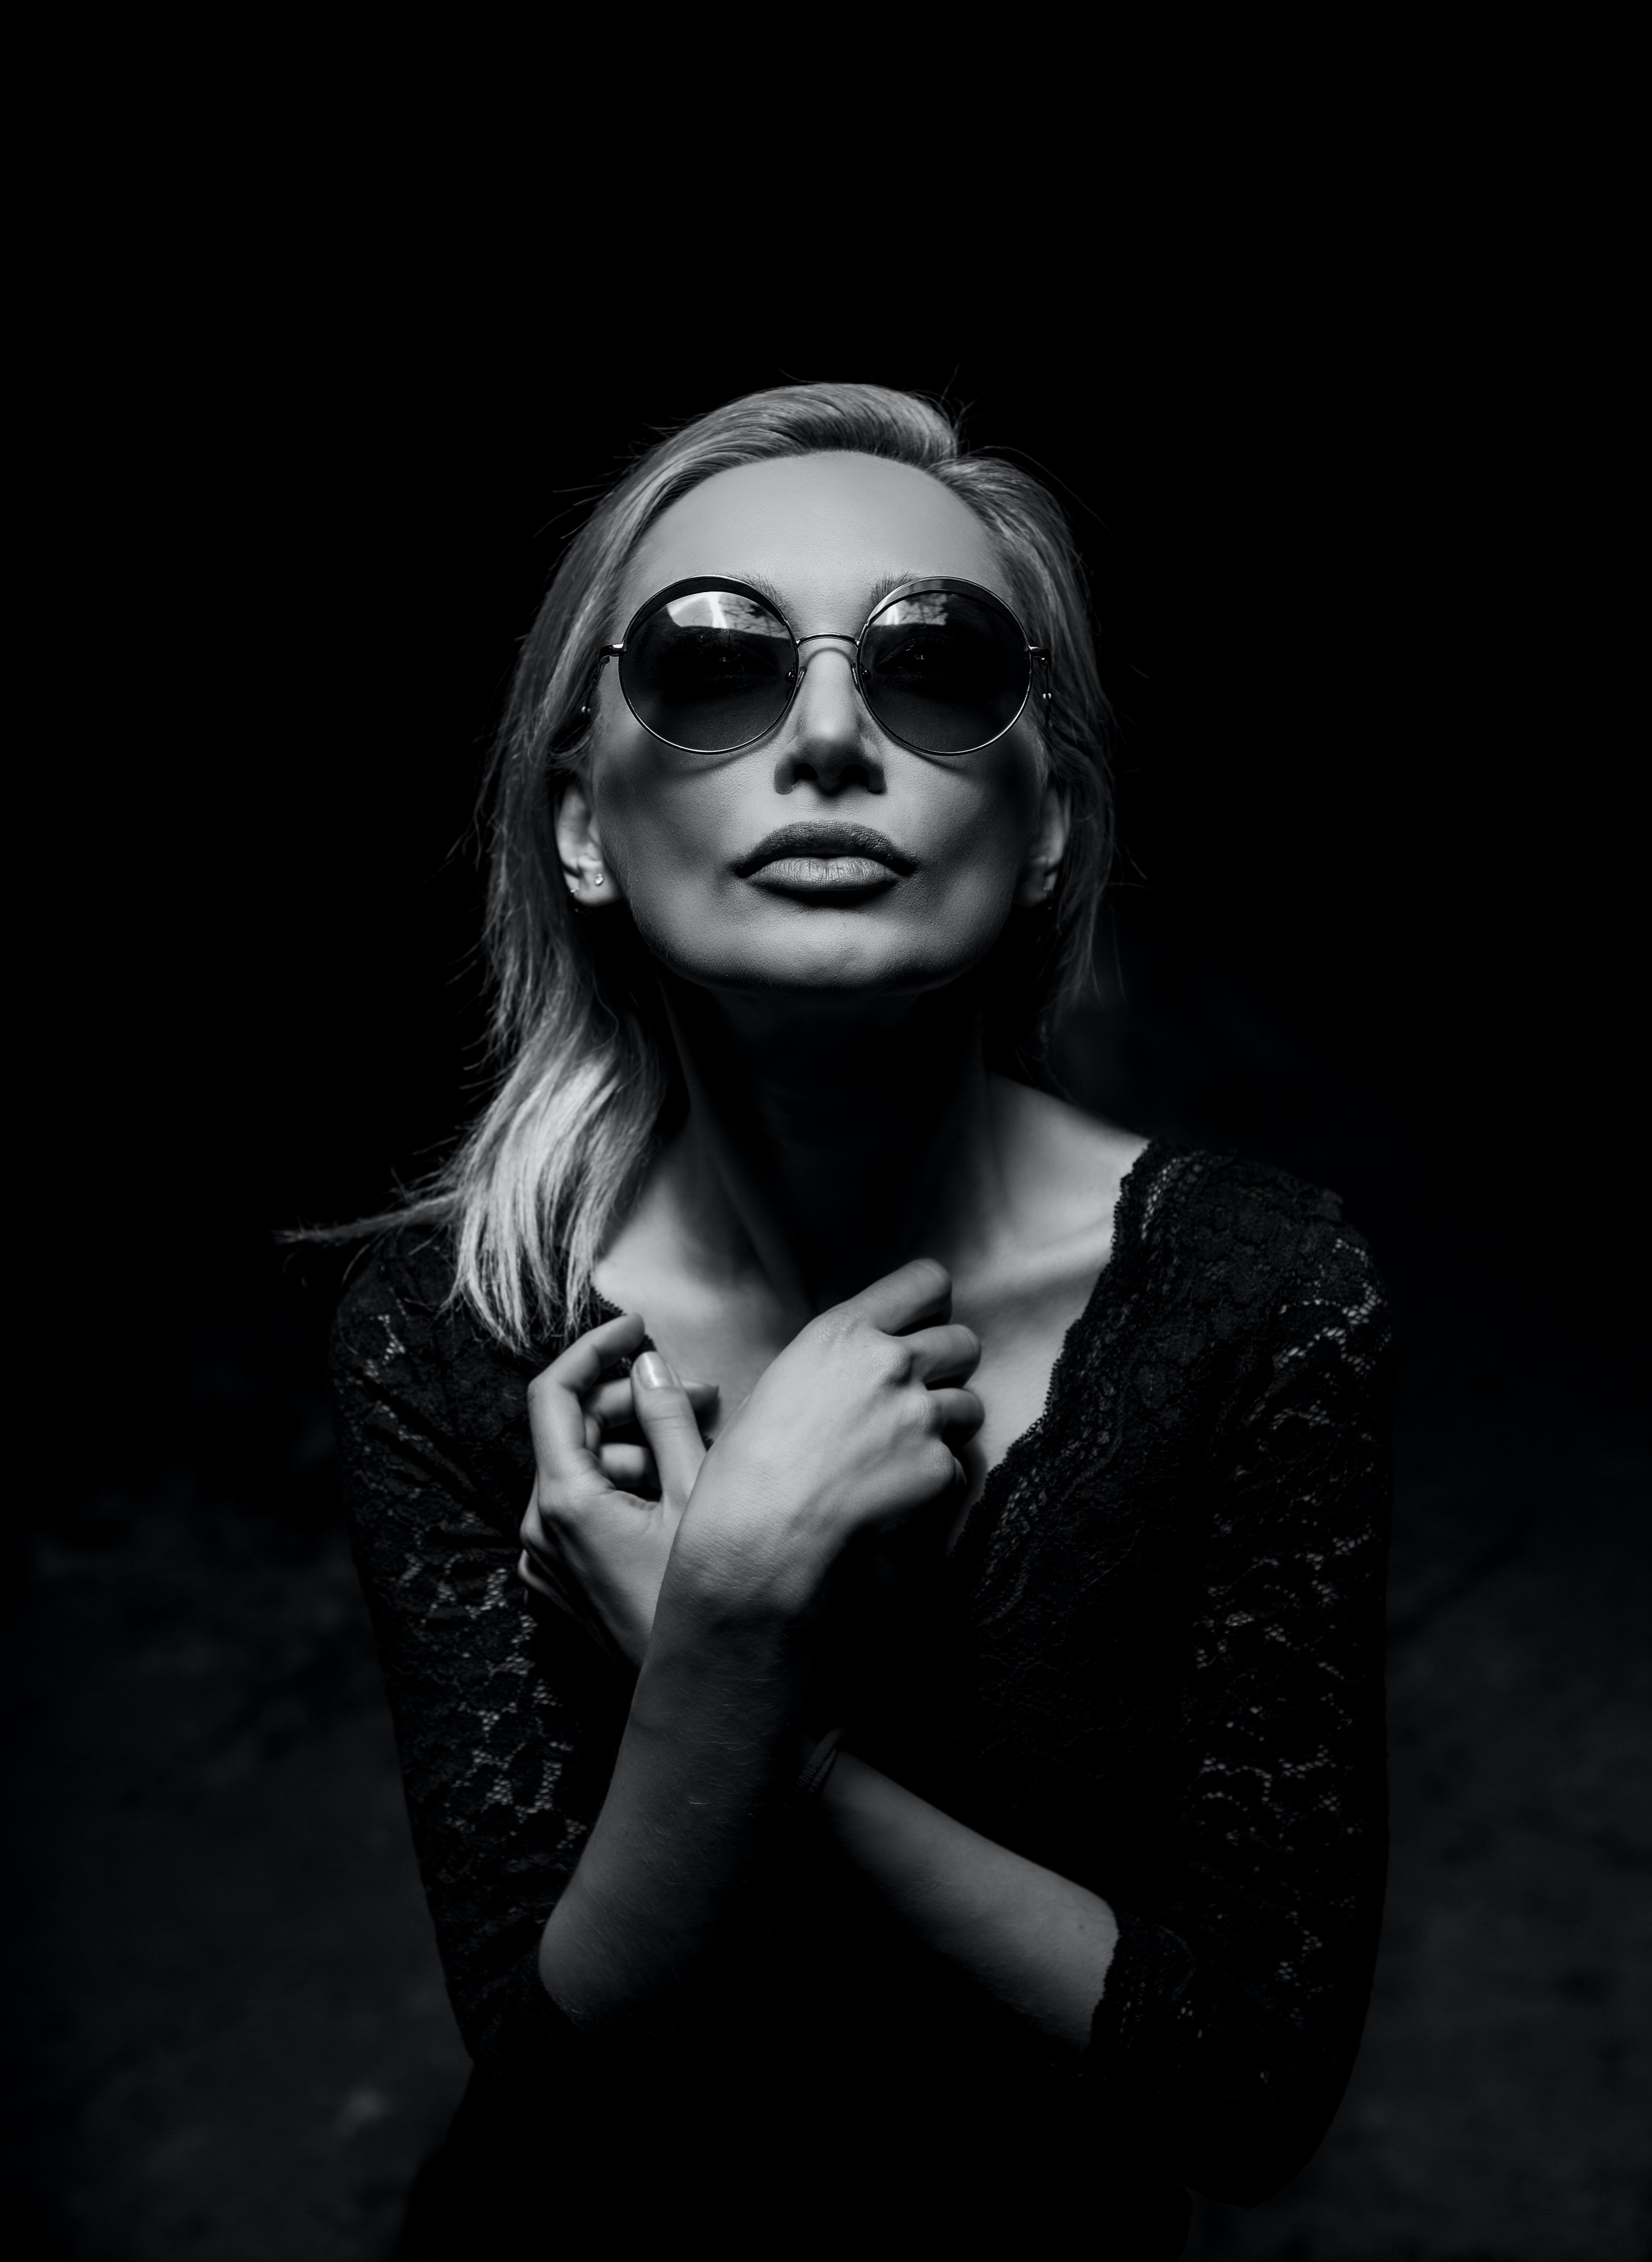 Black and white shot of attractive blonde woman in round sunglasses posing, Tehran Province